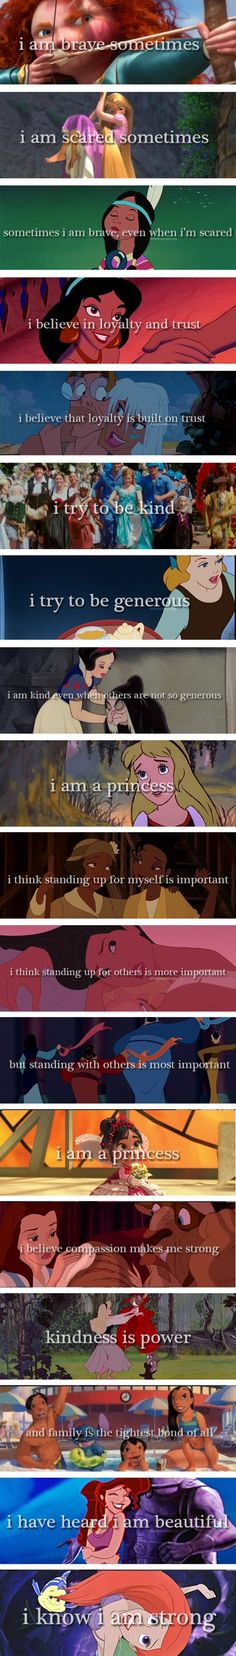 I am a Princess. Long may I reign.